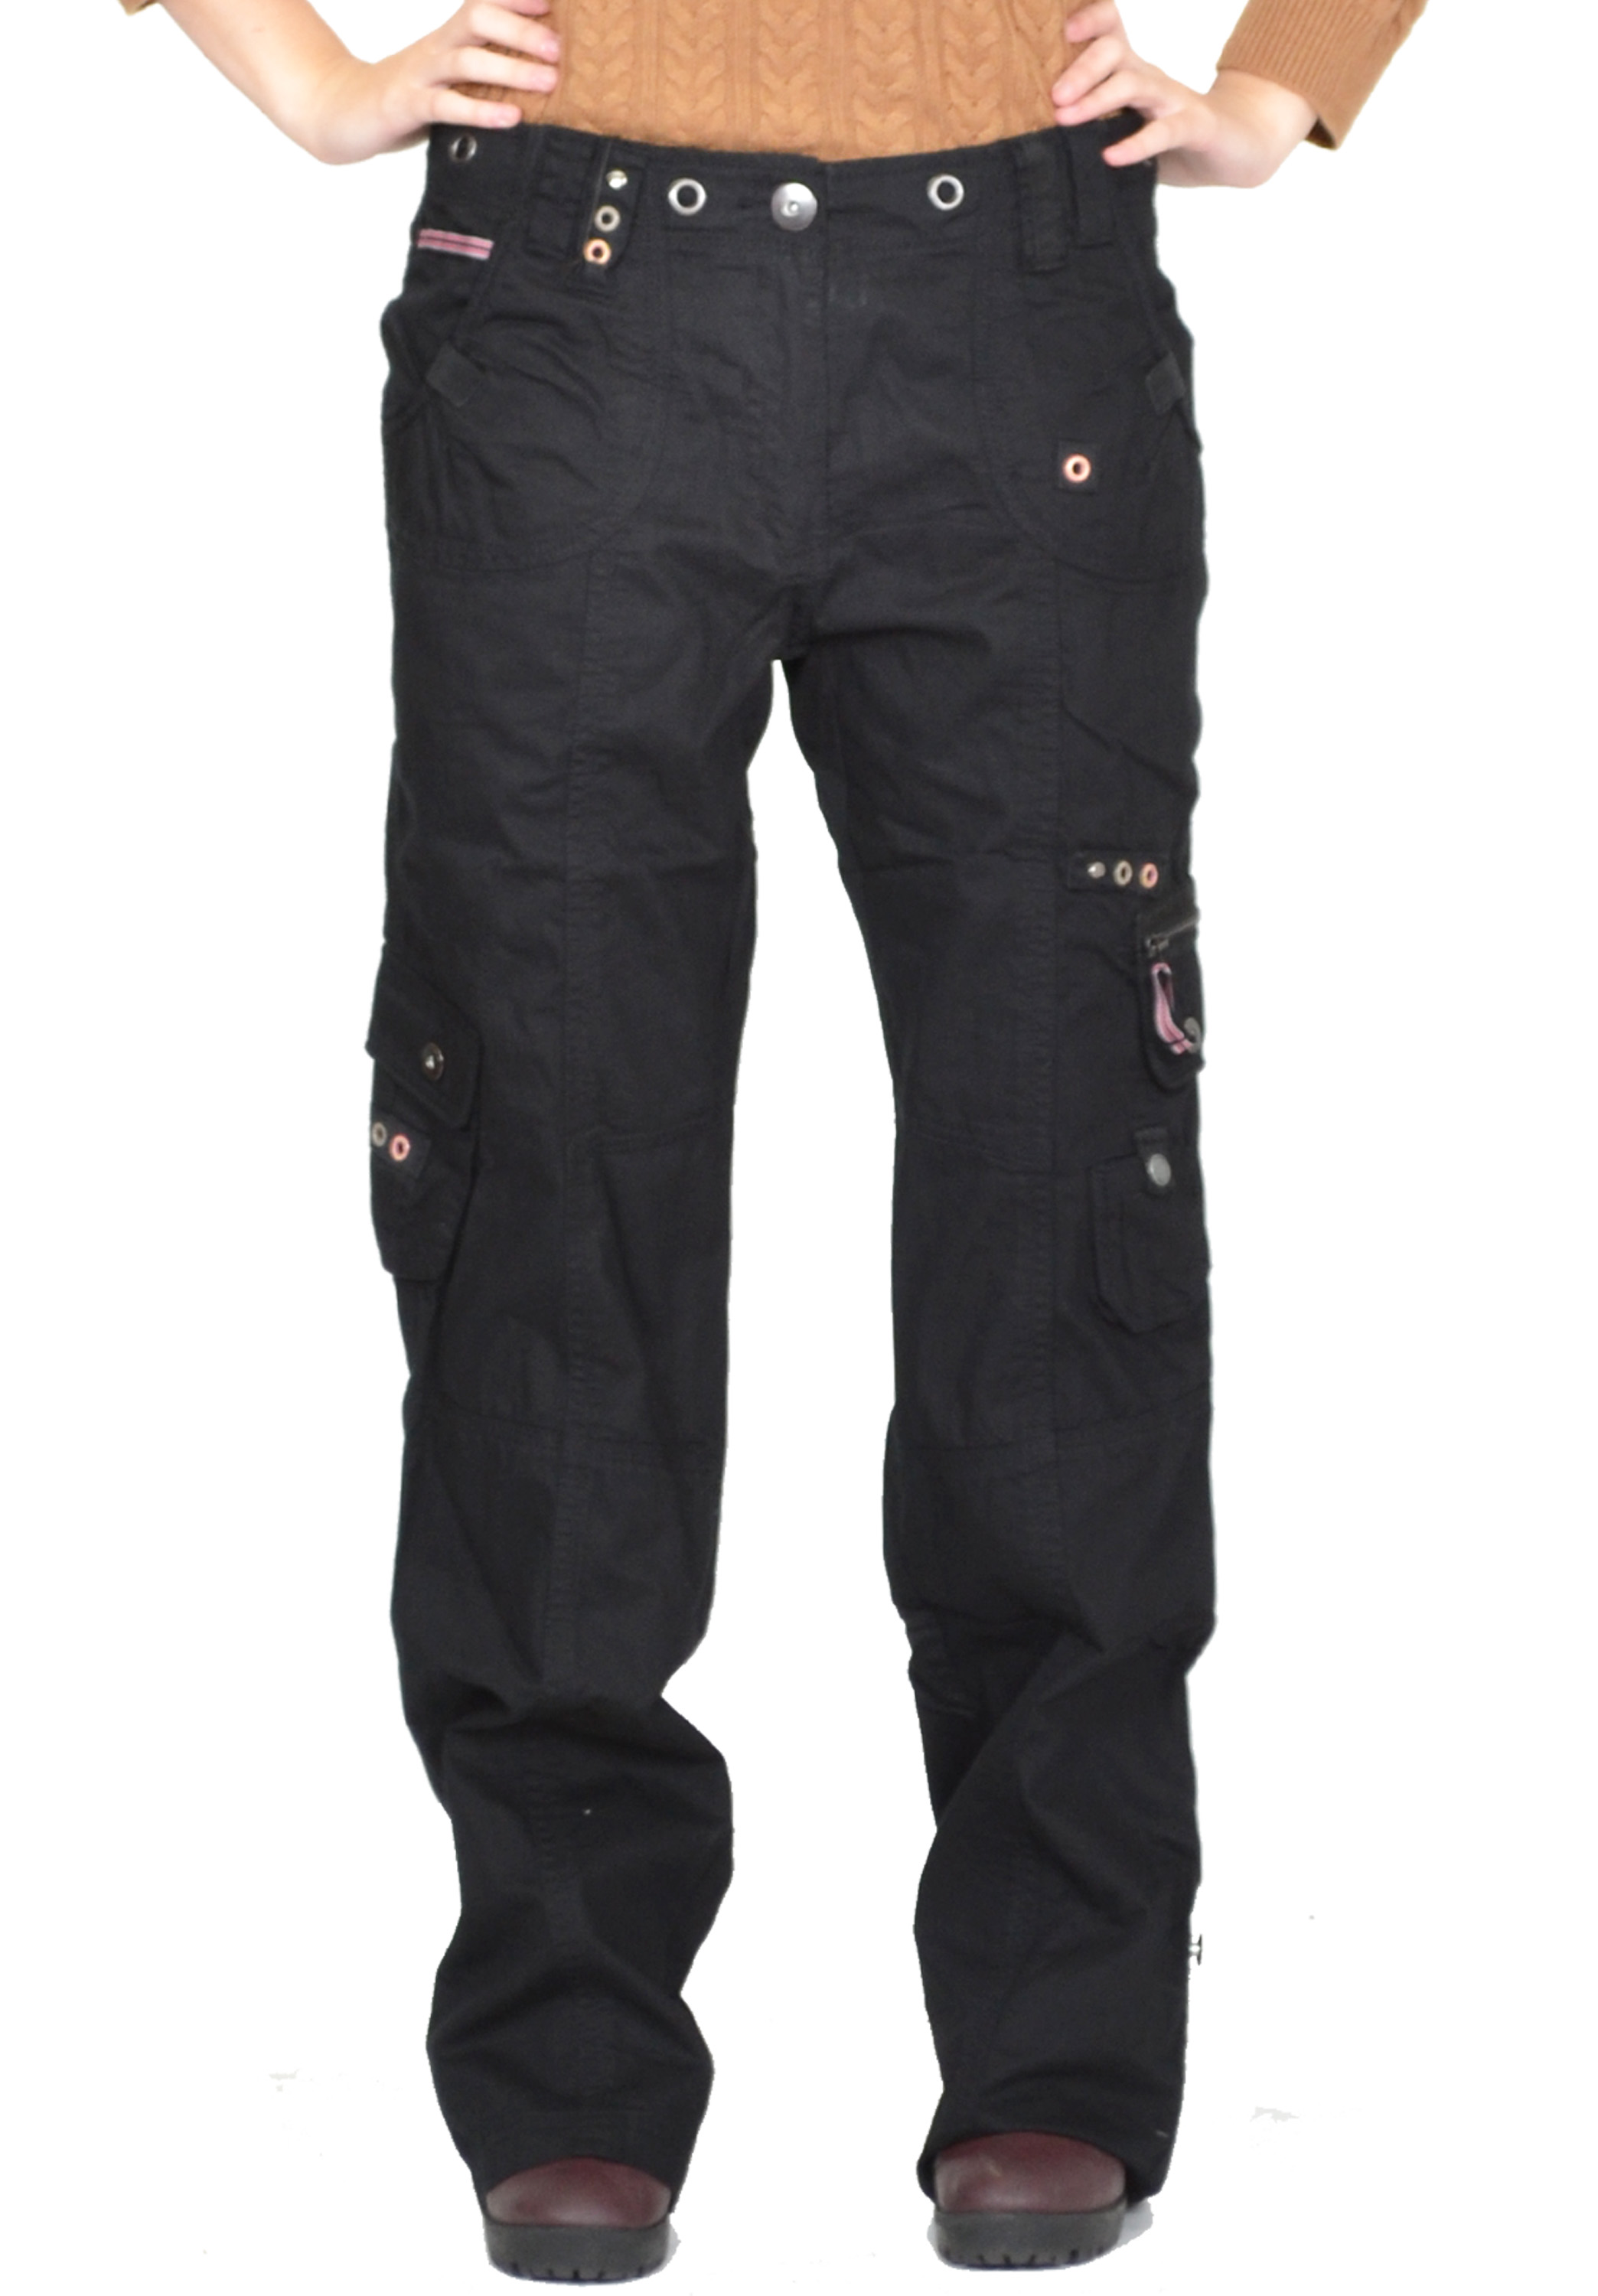 Baggy Cargo Pants Womens With New Inspiration – playzoa.com